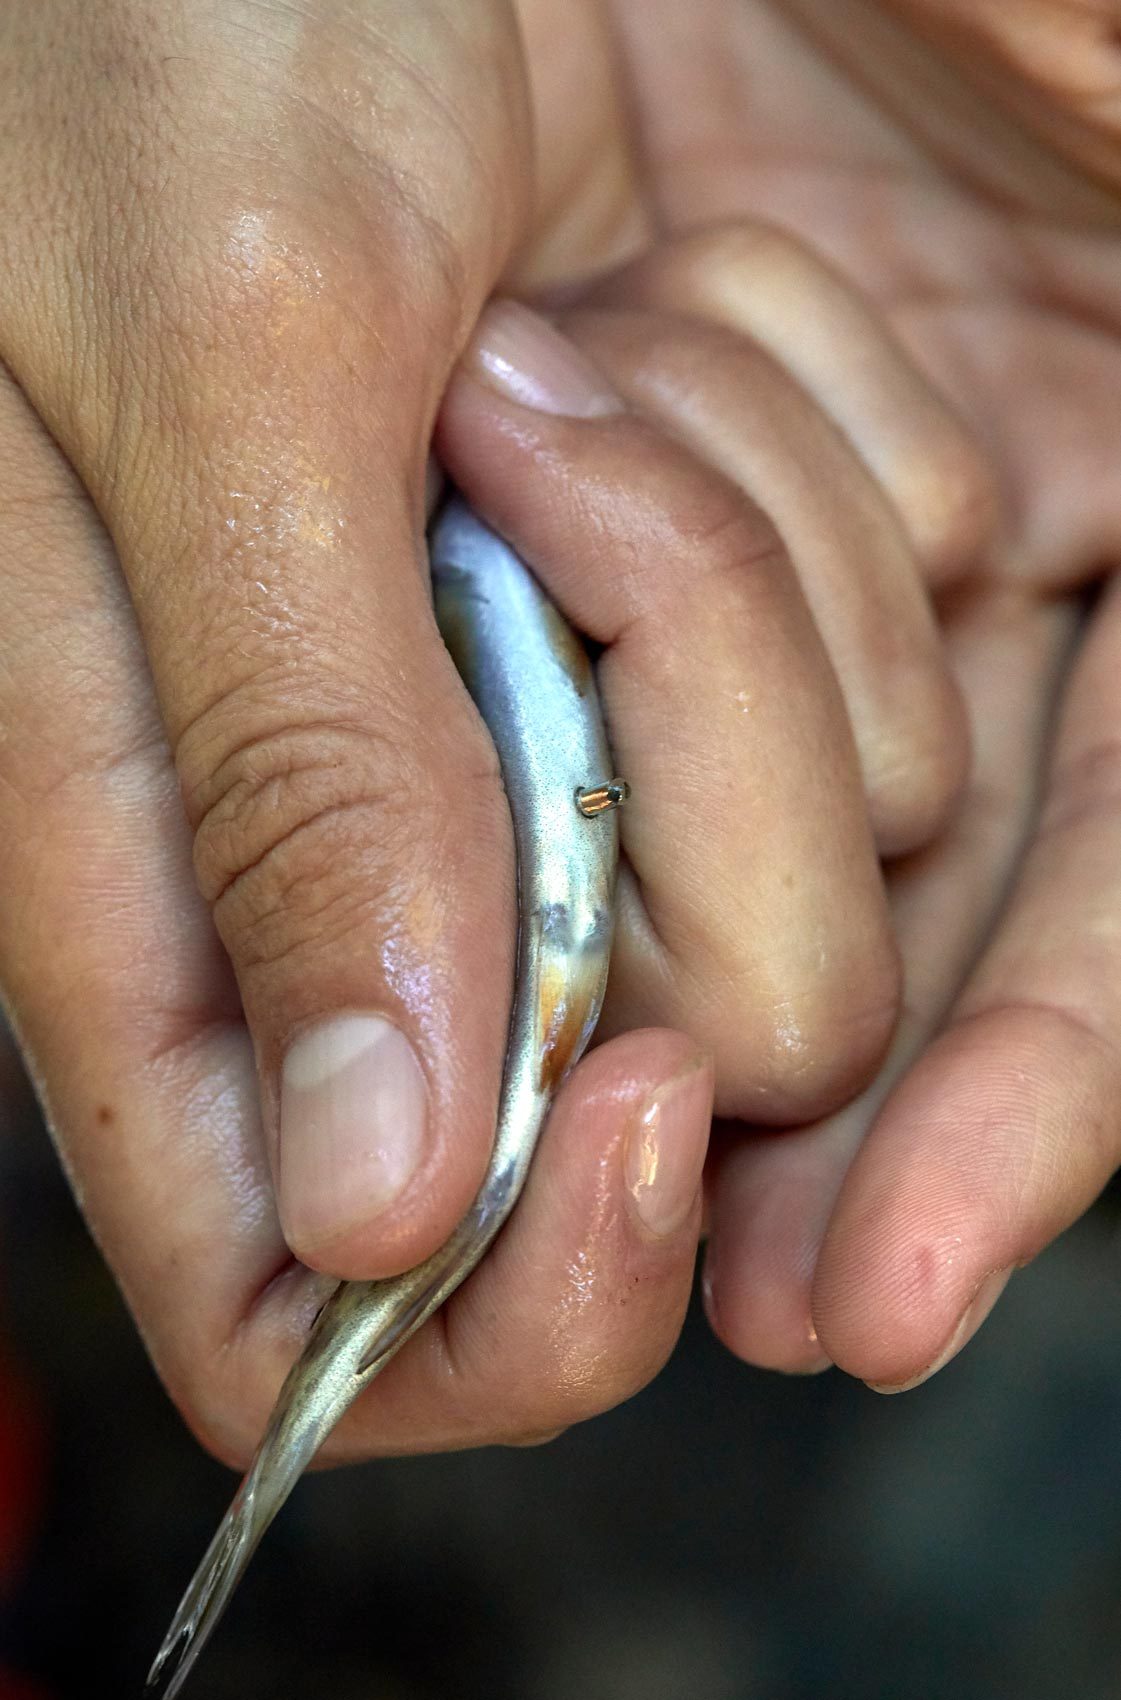 Reasearcher Inserts RFID Capsule into Small Incision on Fish